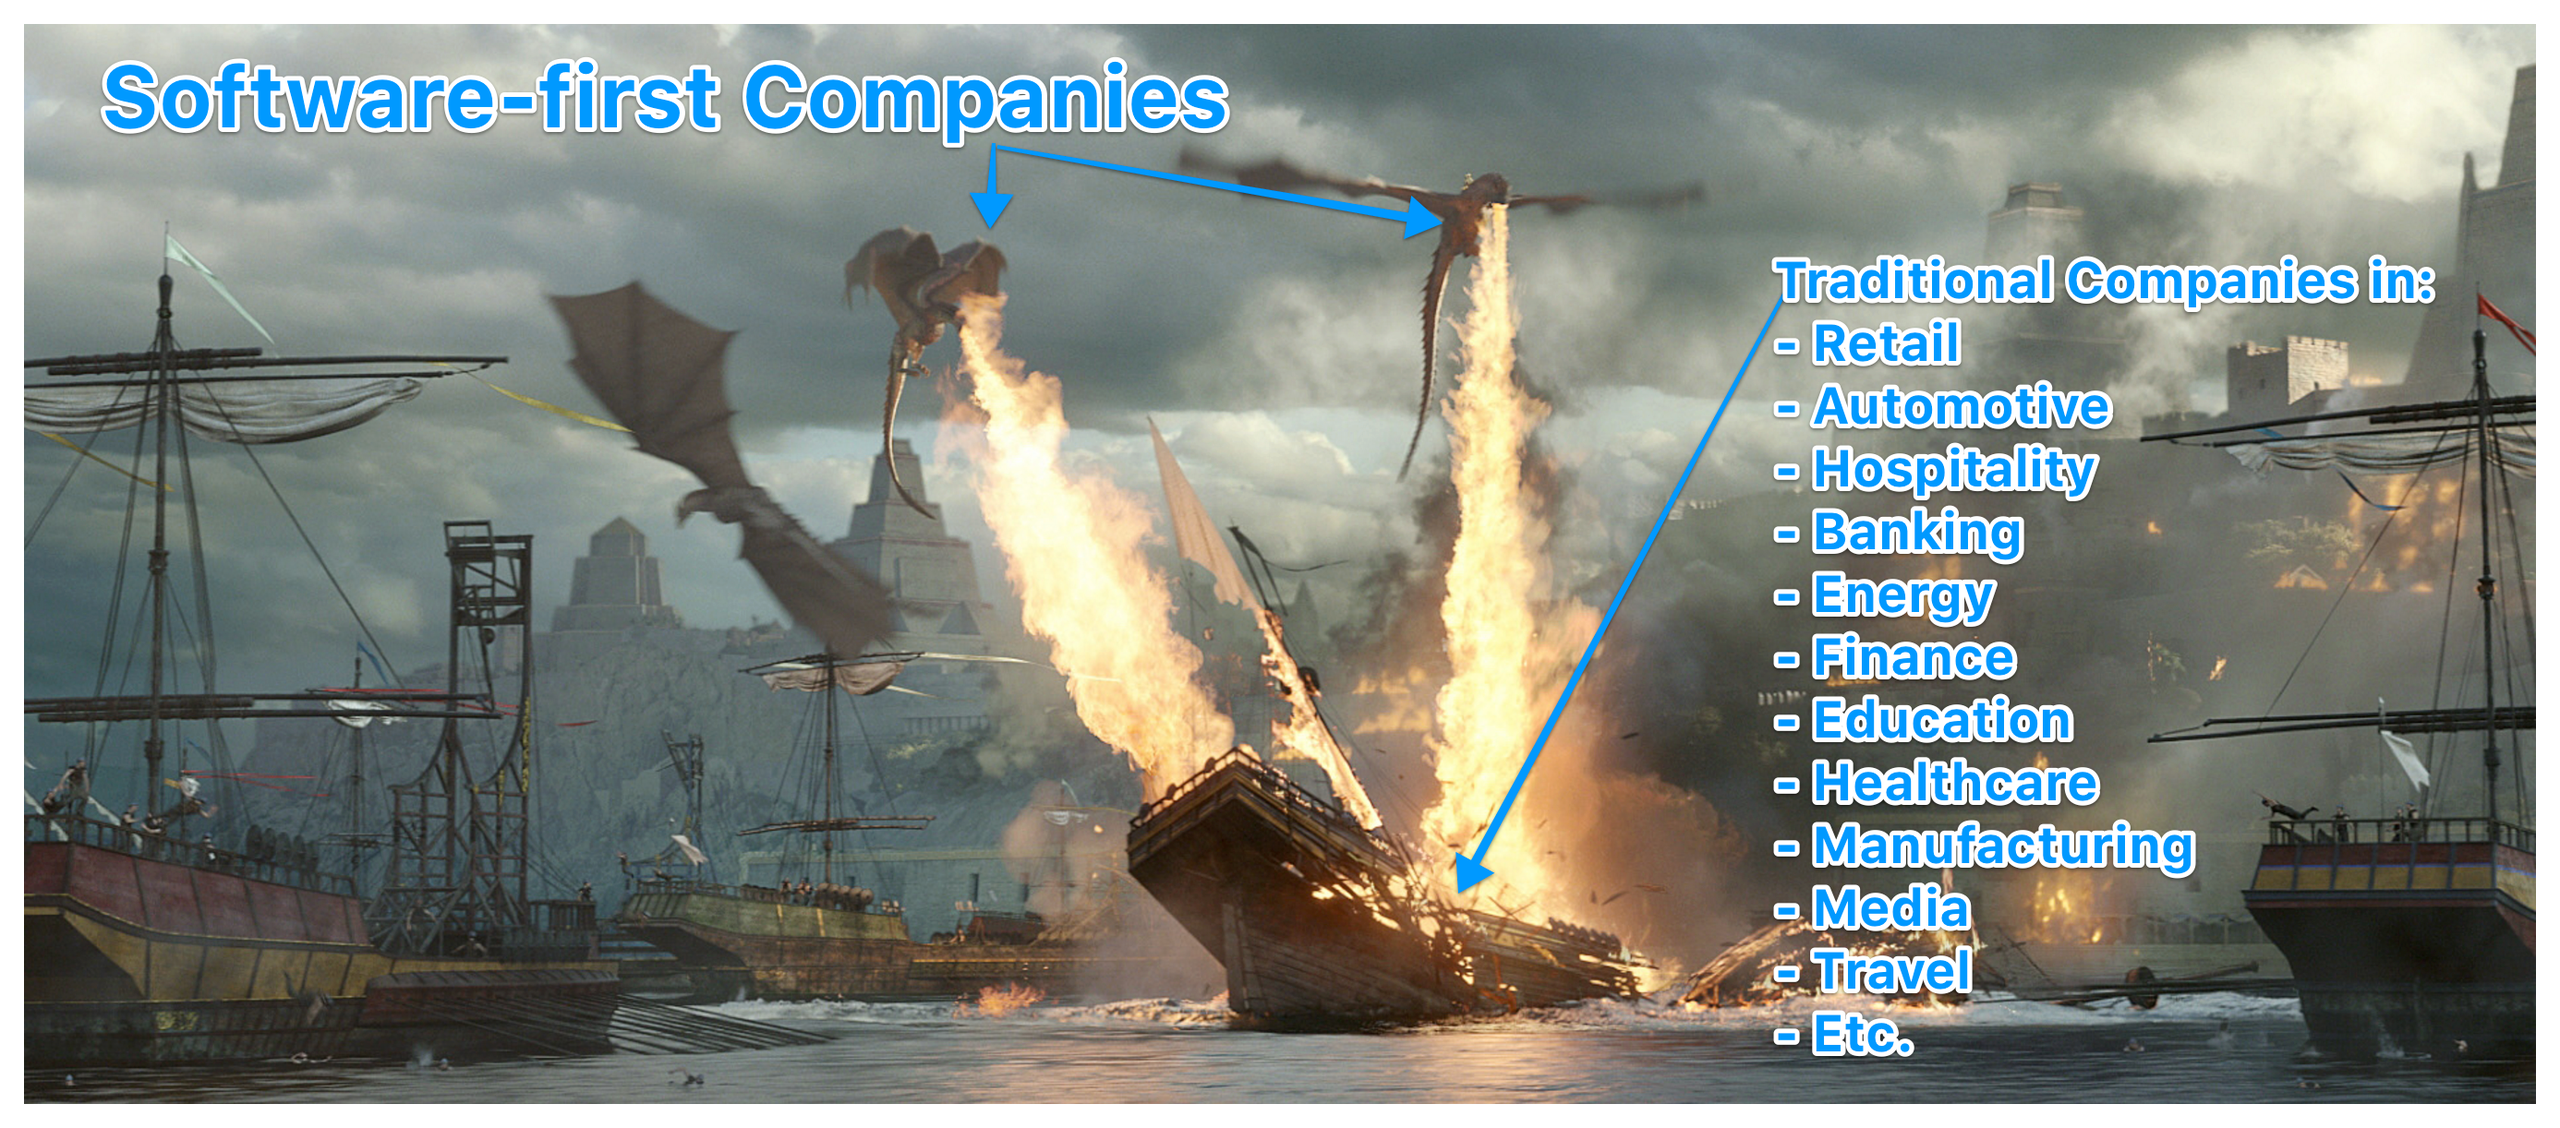 Software dominates industries like the fire-breathing dragons in Game of Thrones